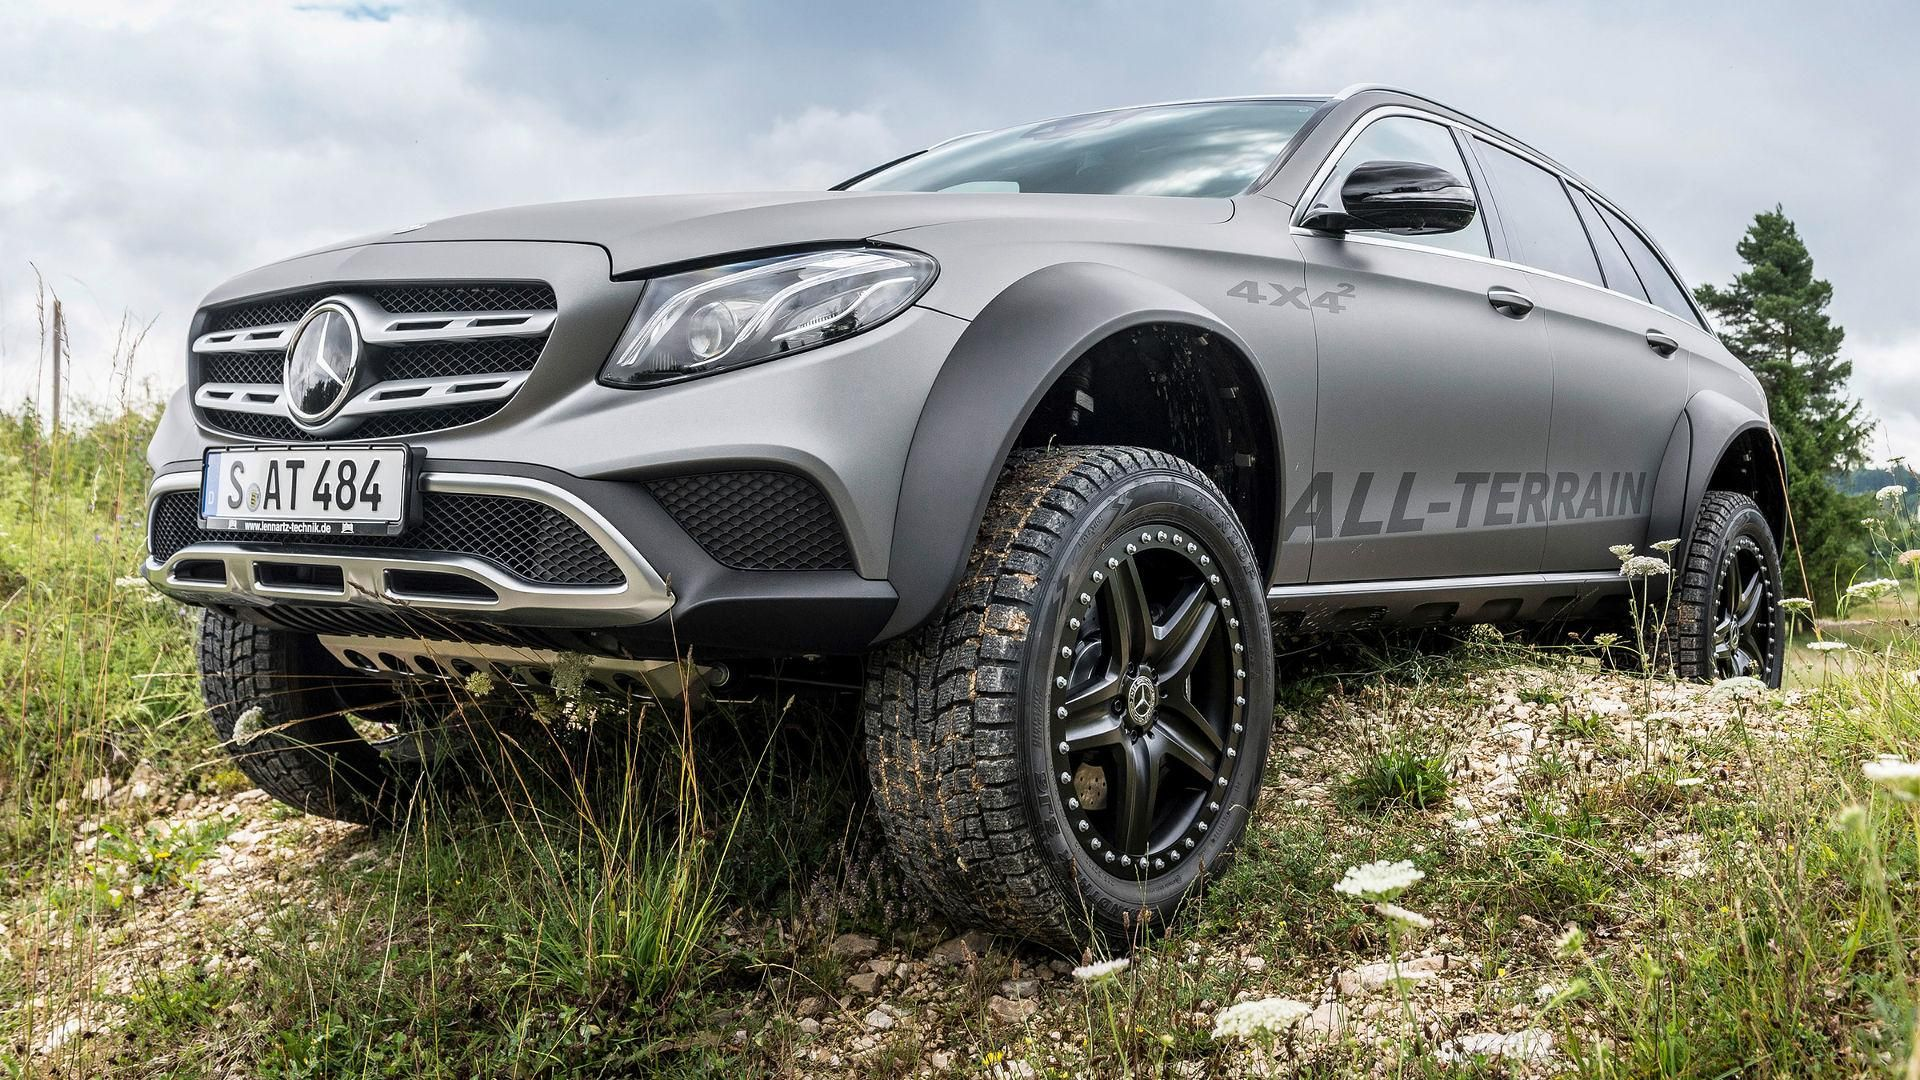 10 images with the hardcore mercedes e-class all-terrain 4x4², a